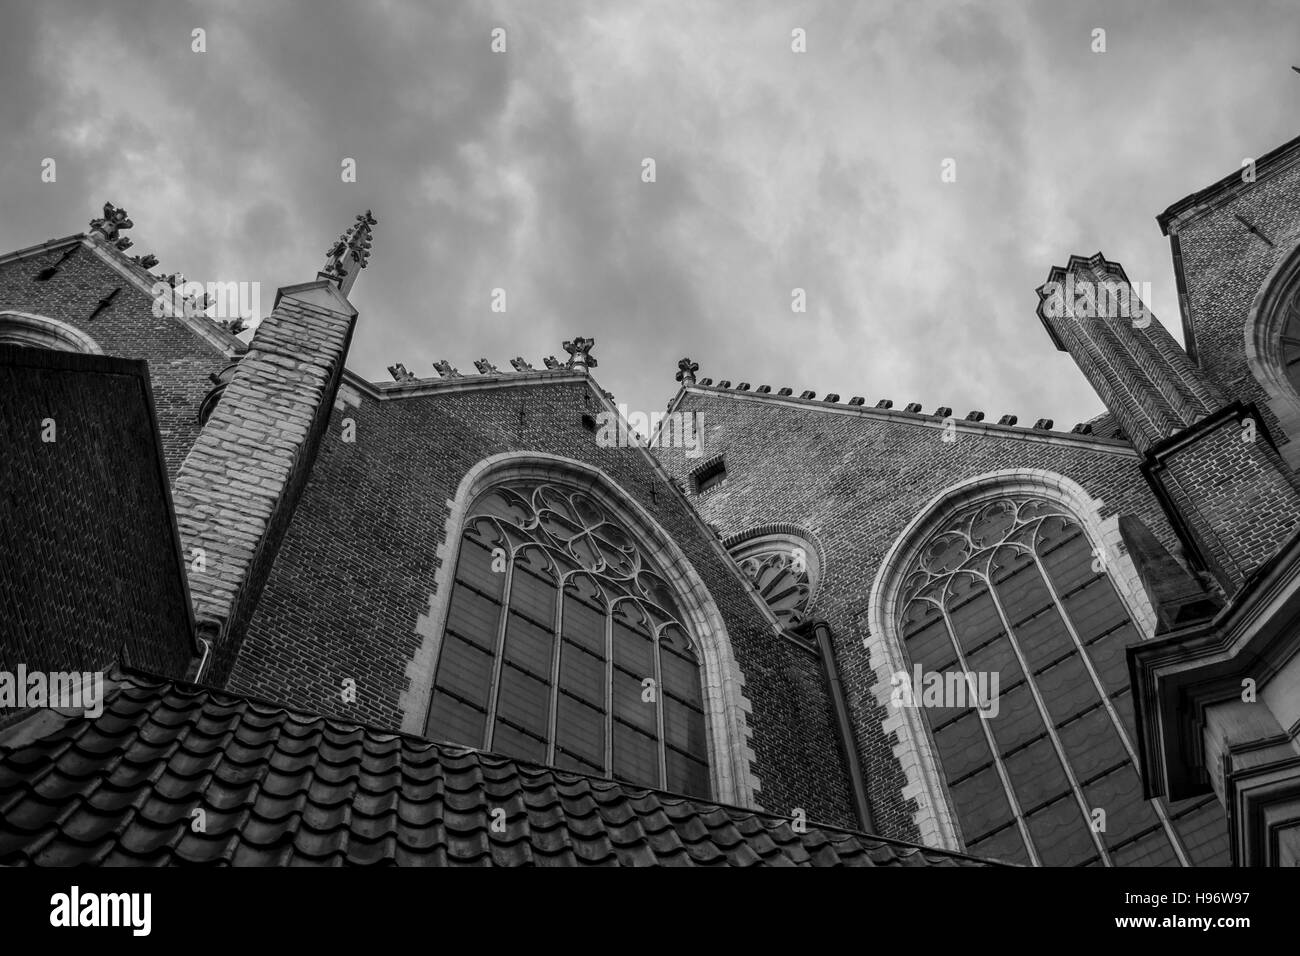 Gothic Windows And Architectural Details On A Church In Amsterdam Black White With Dramatic Sky